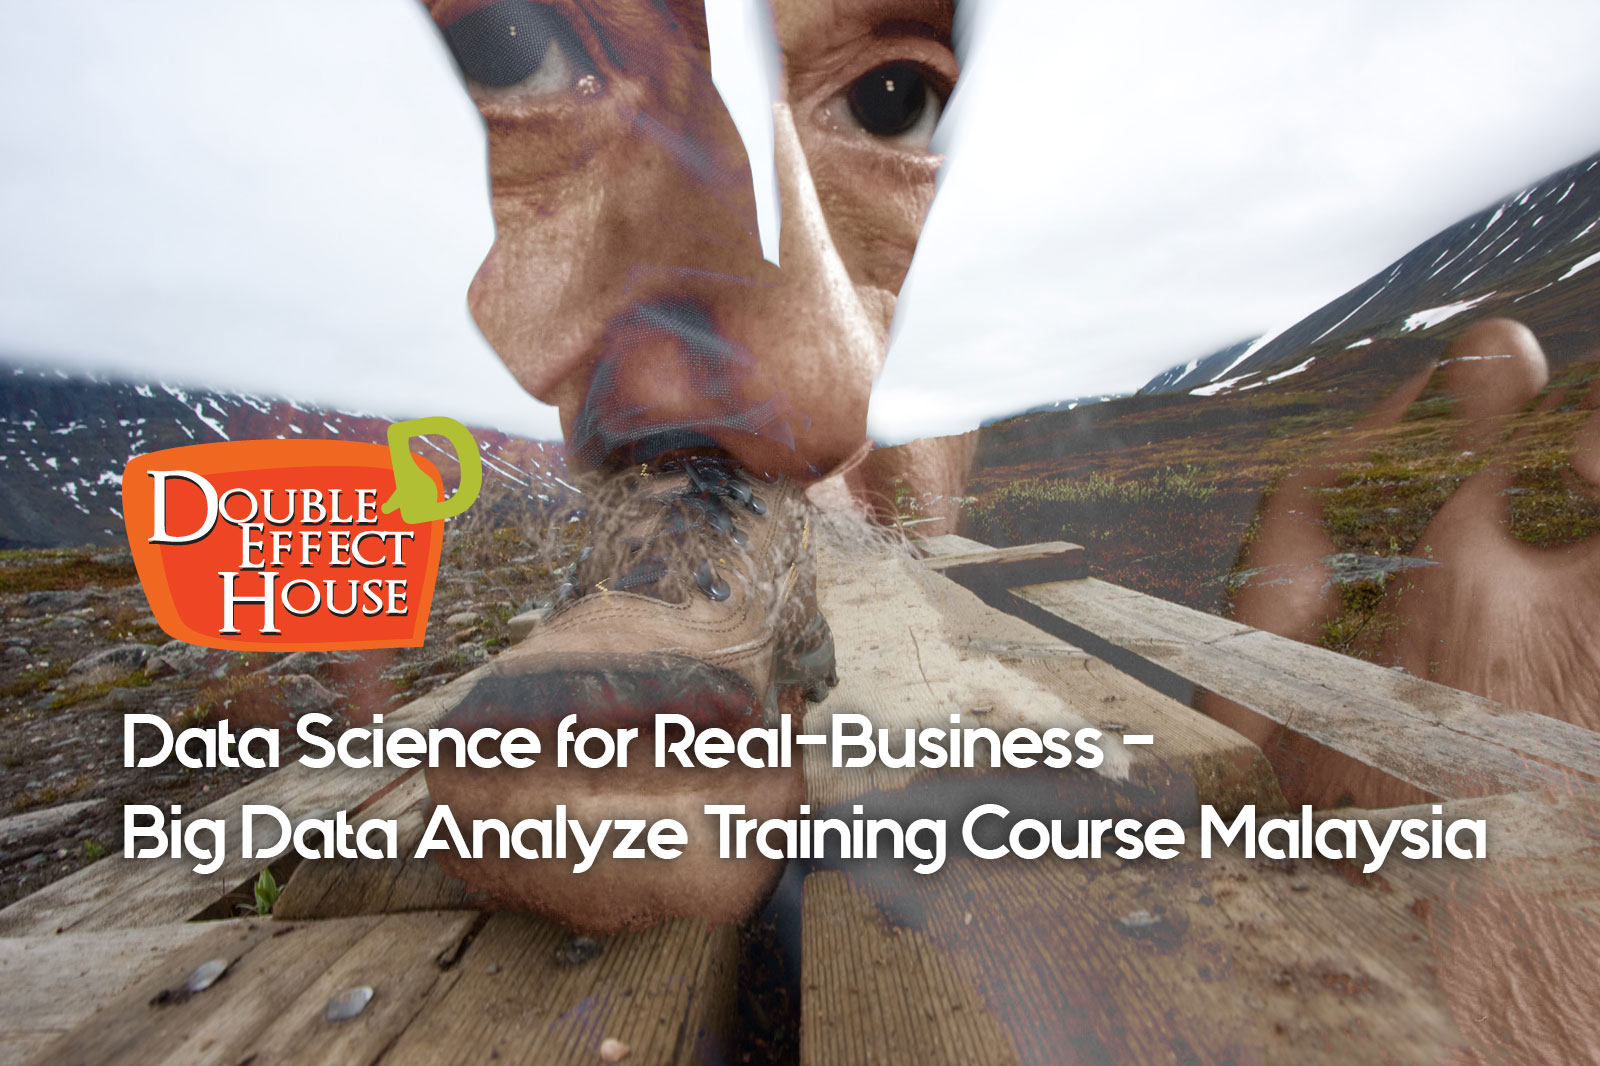 Data Science for Real-Business -Big Data Analyze Training Course Malaysia